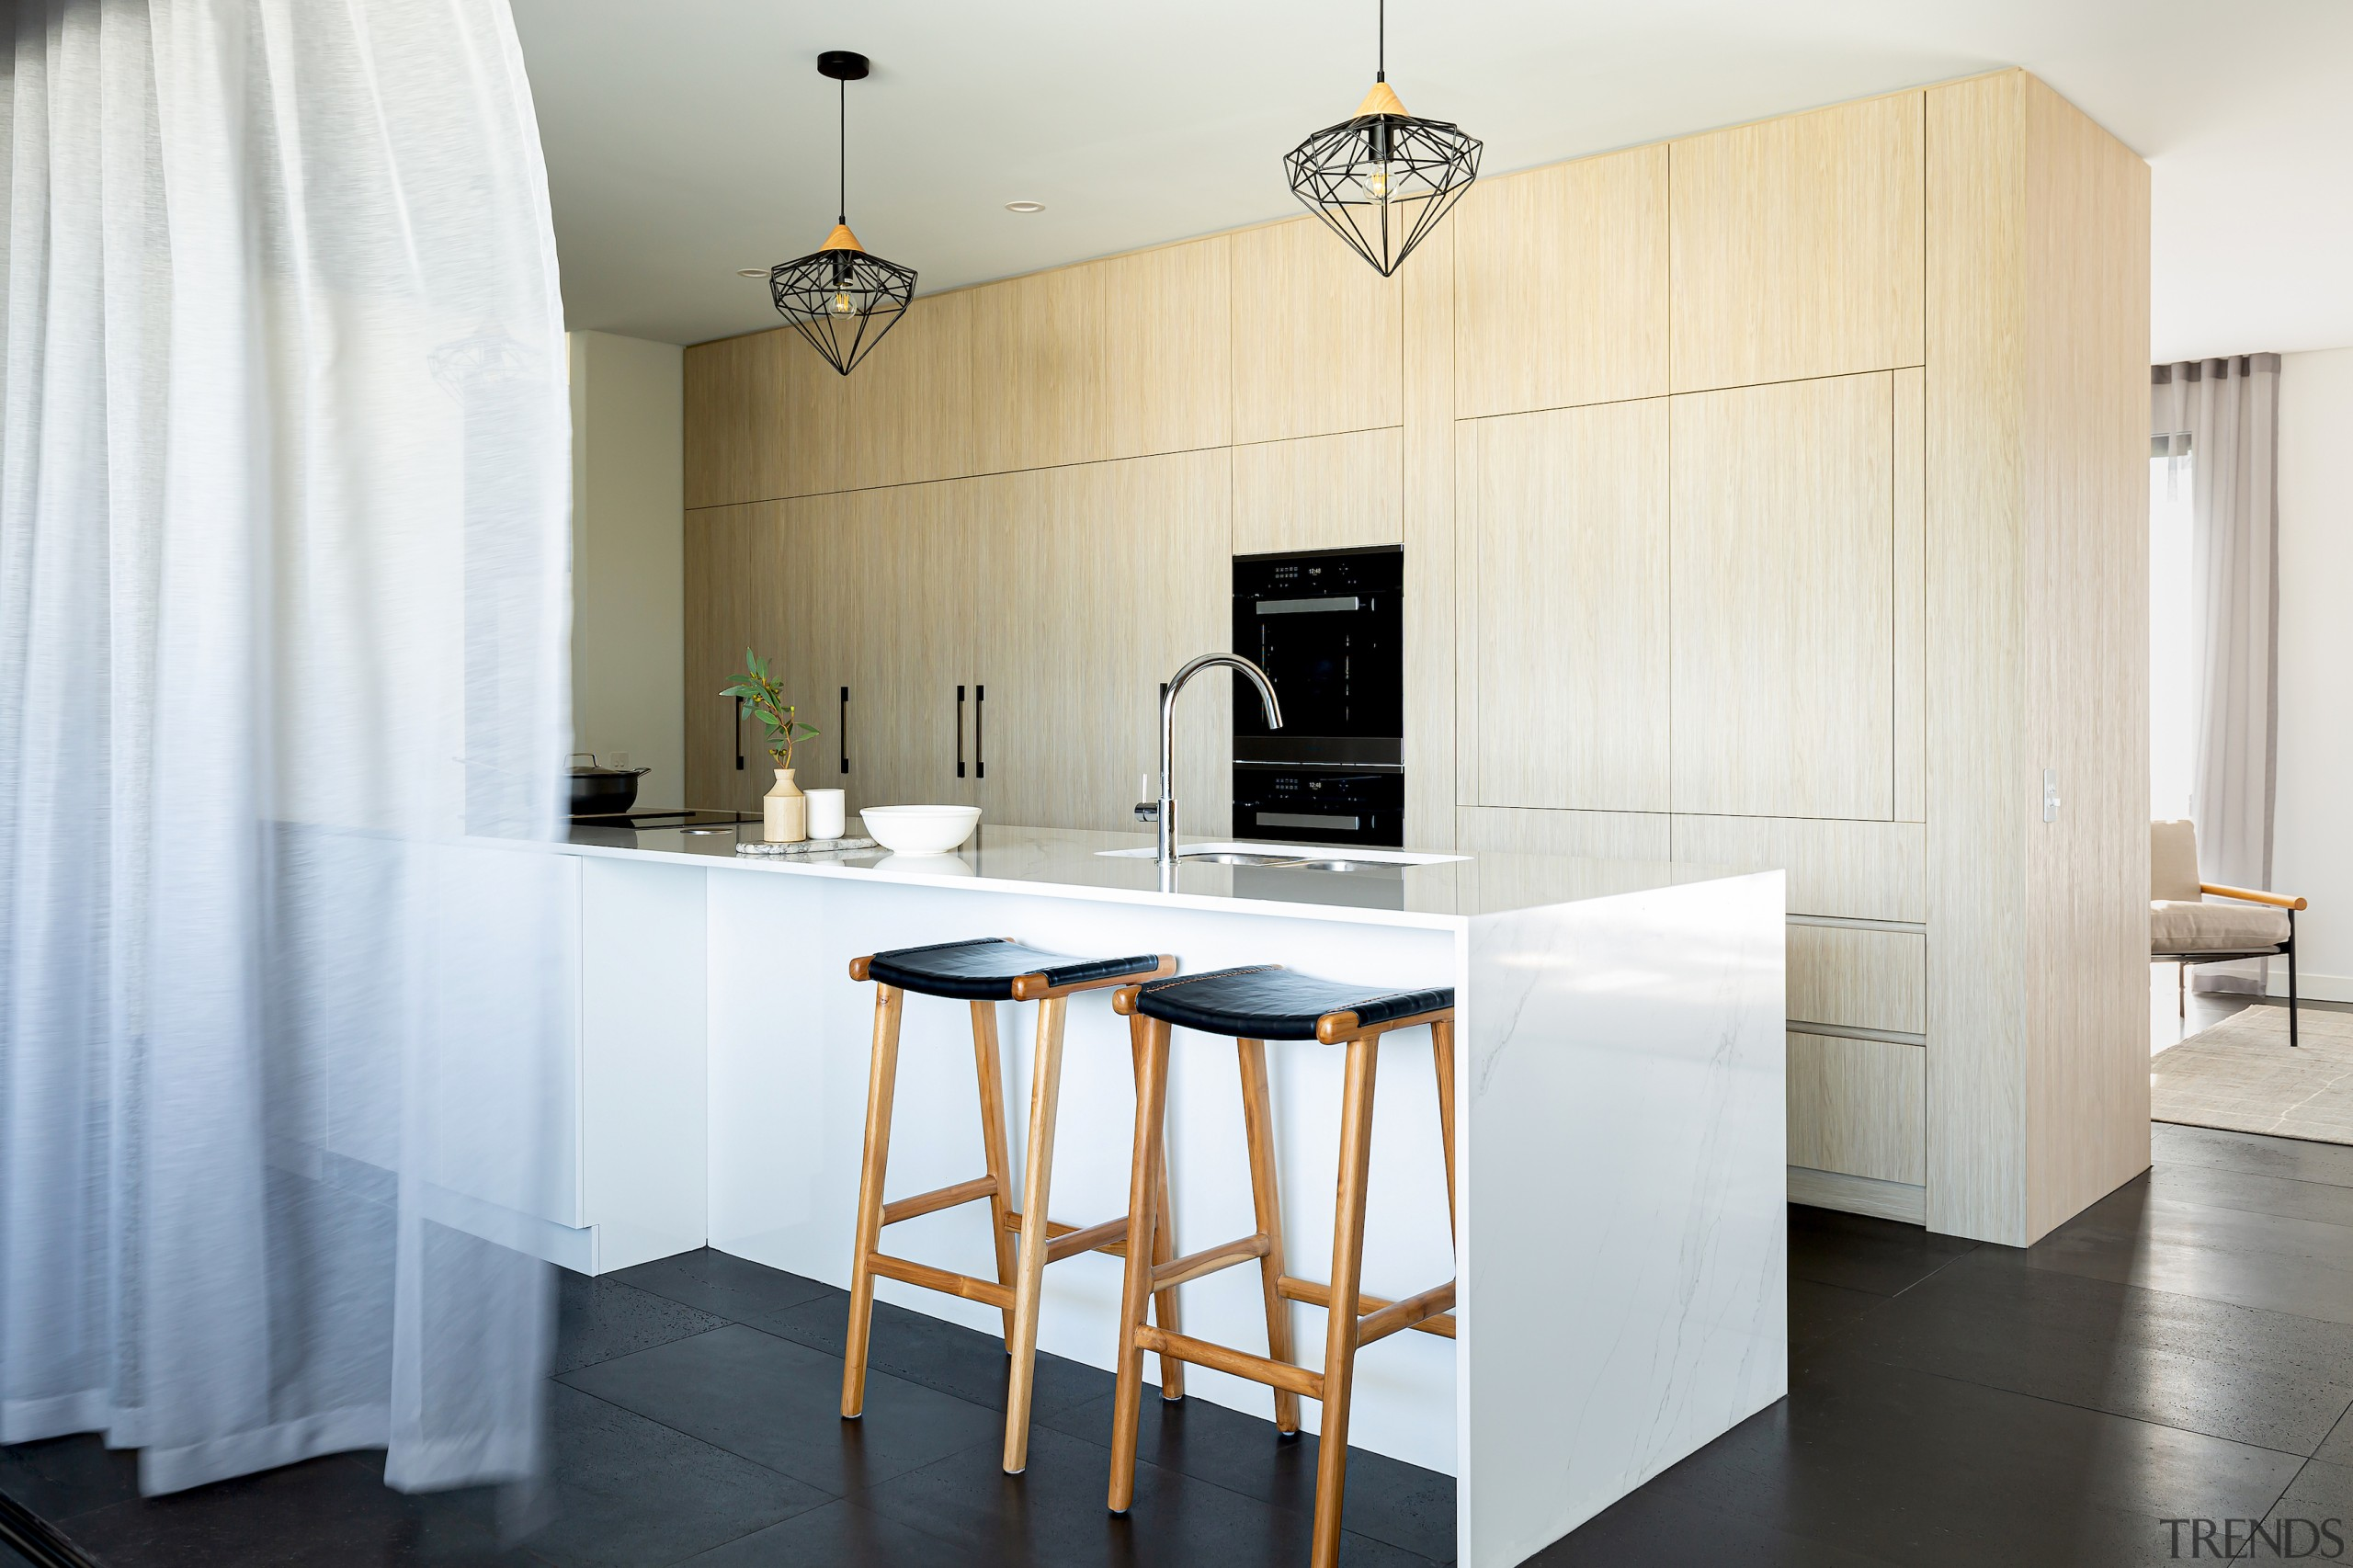 Using similar materials throughout the kitchen and the